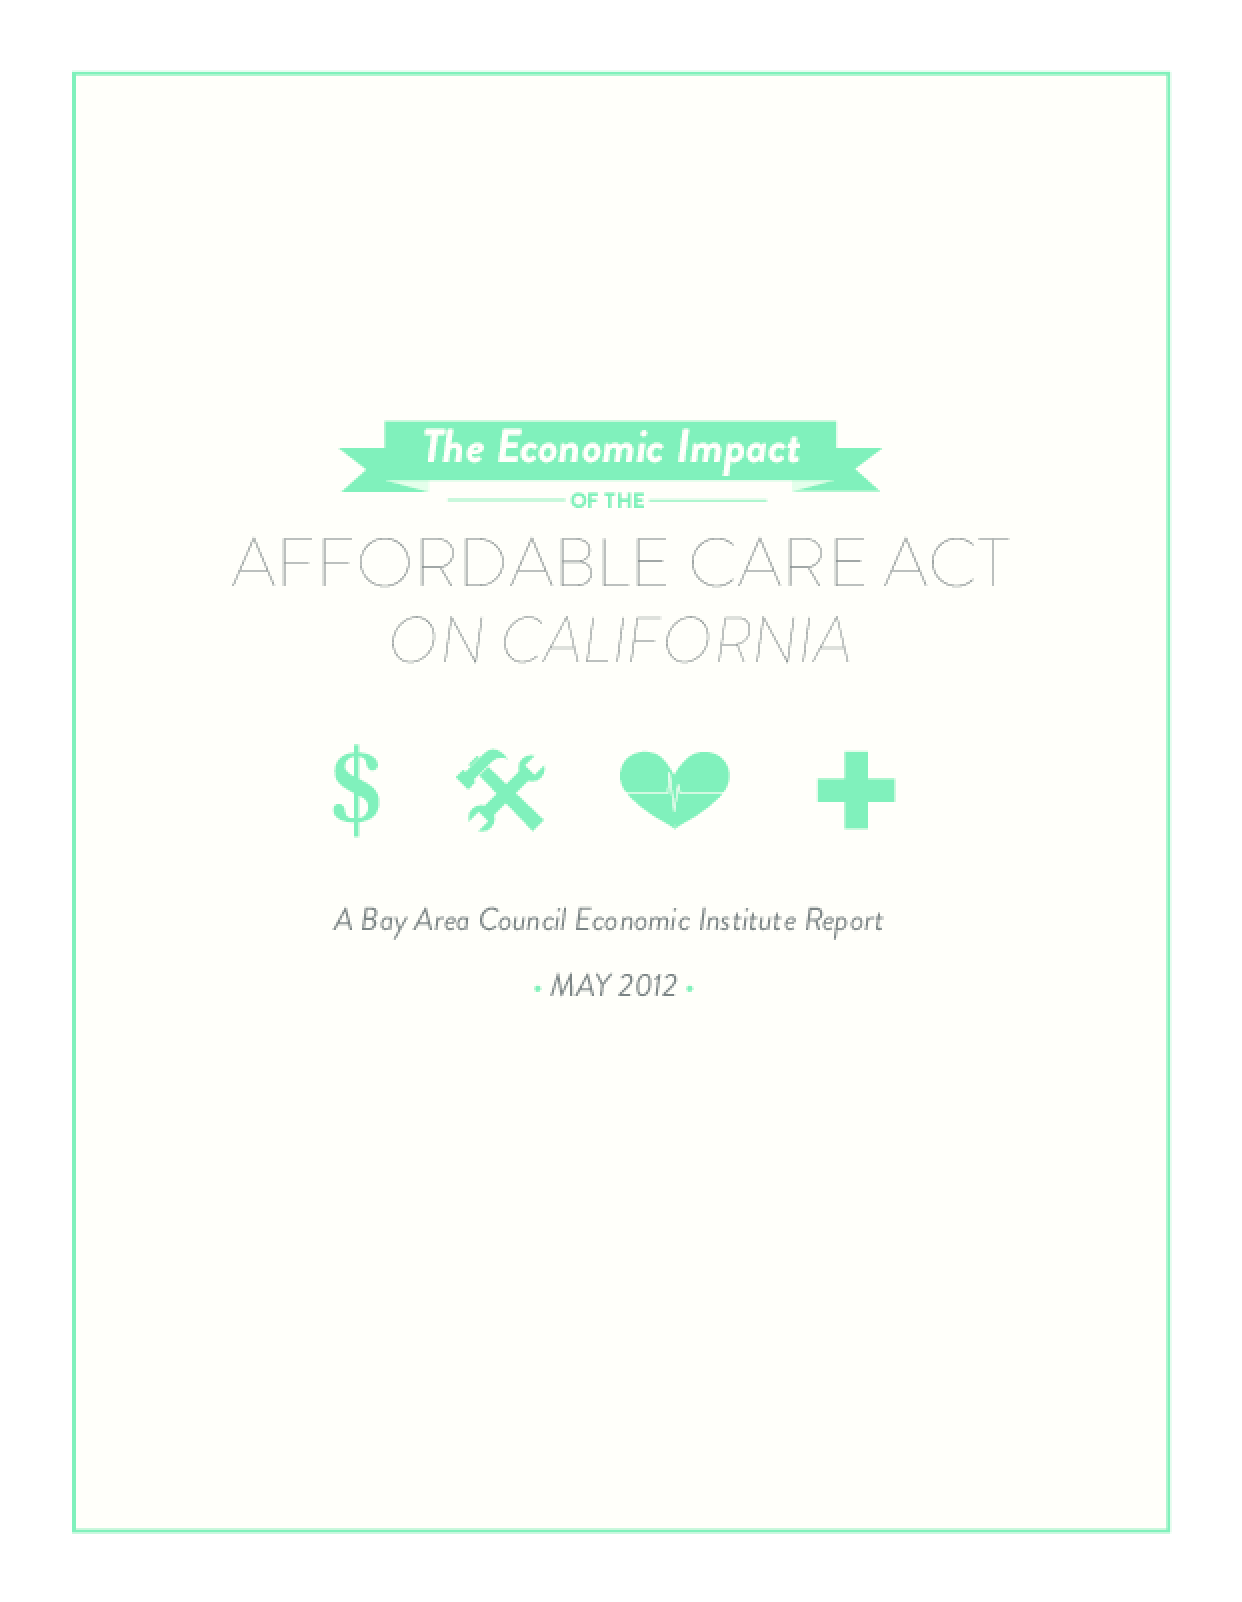 The Economic Impact of the Affordable Care Act on California